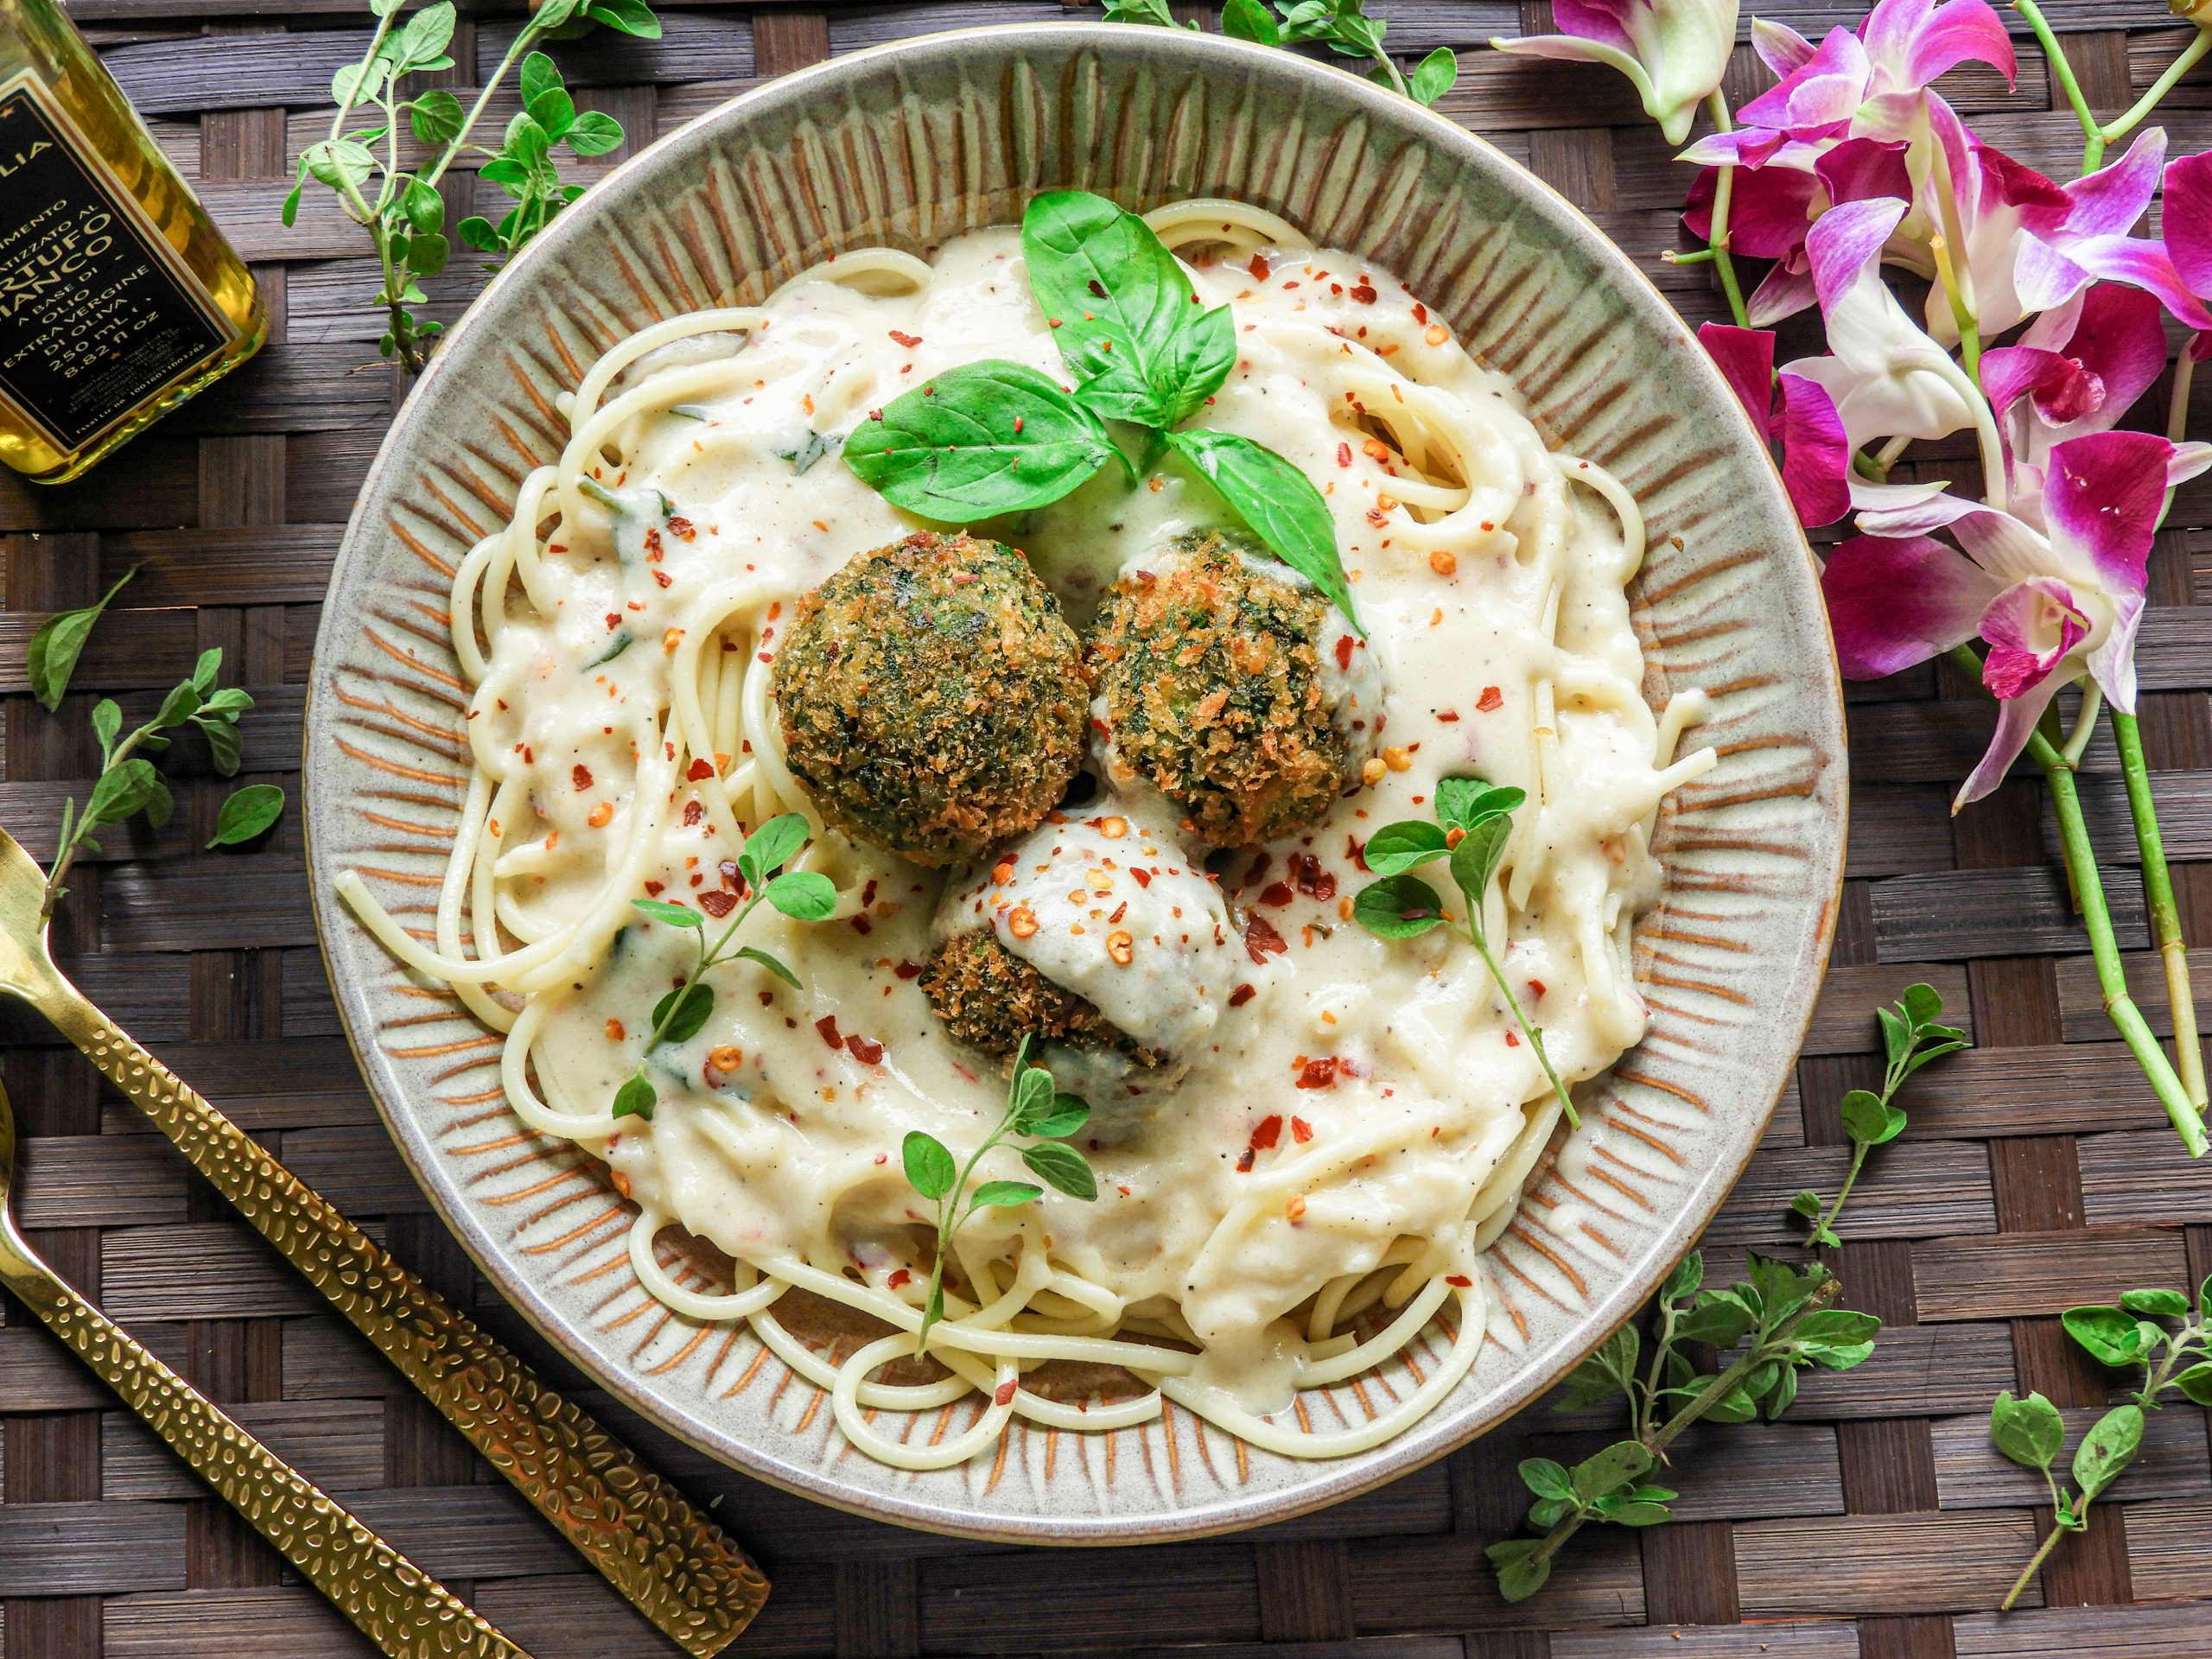 Spaghetti with Goat Cheese Spinach Balls & Cheese Sauce